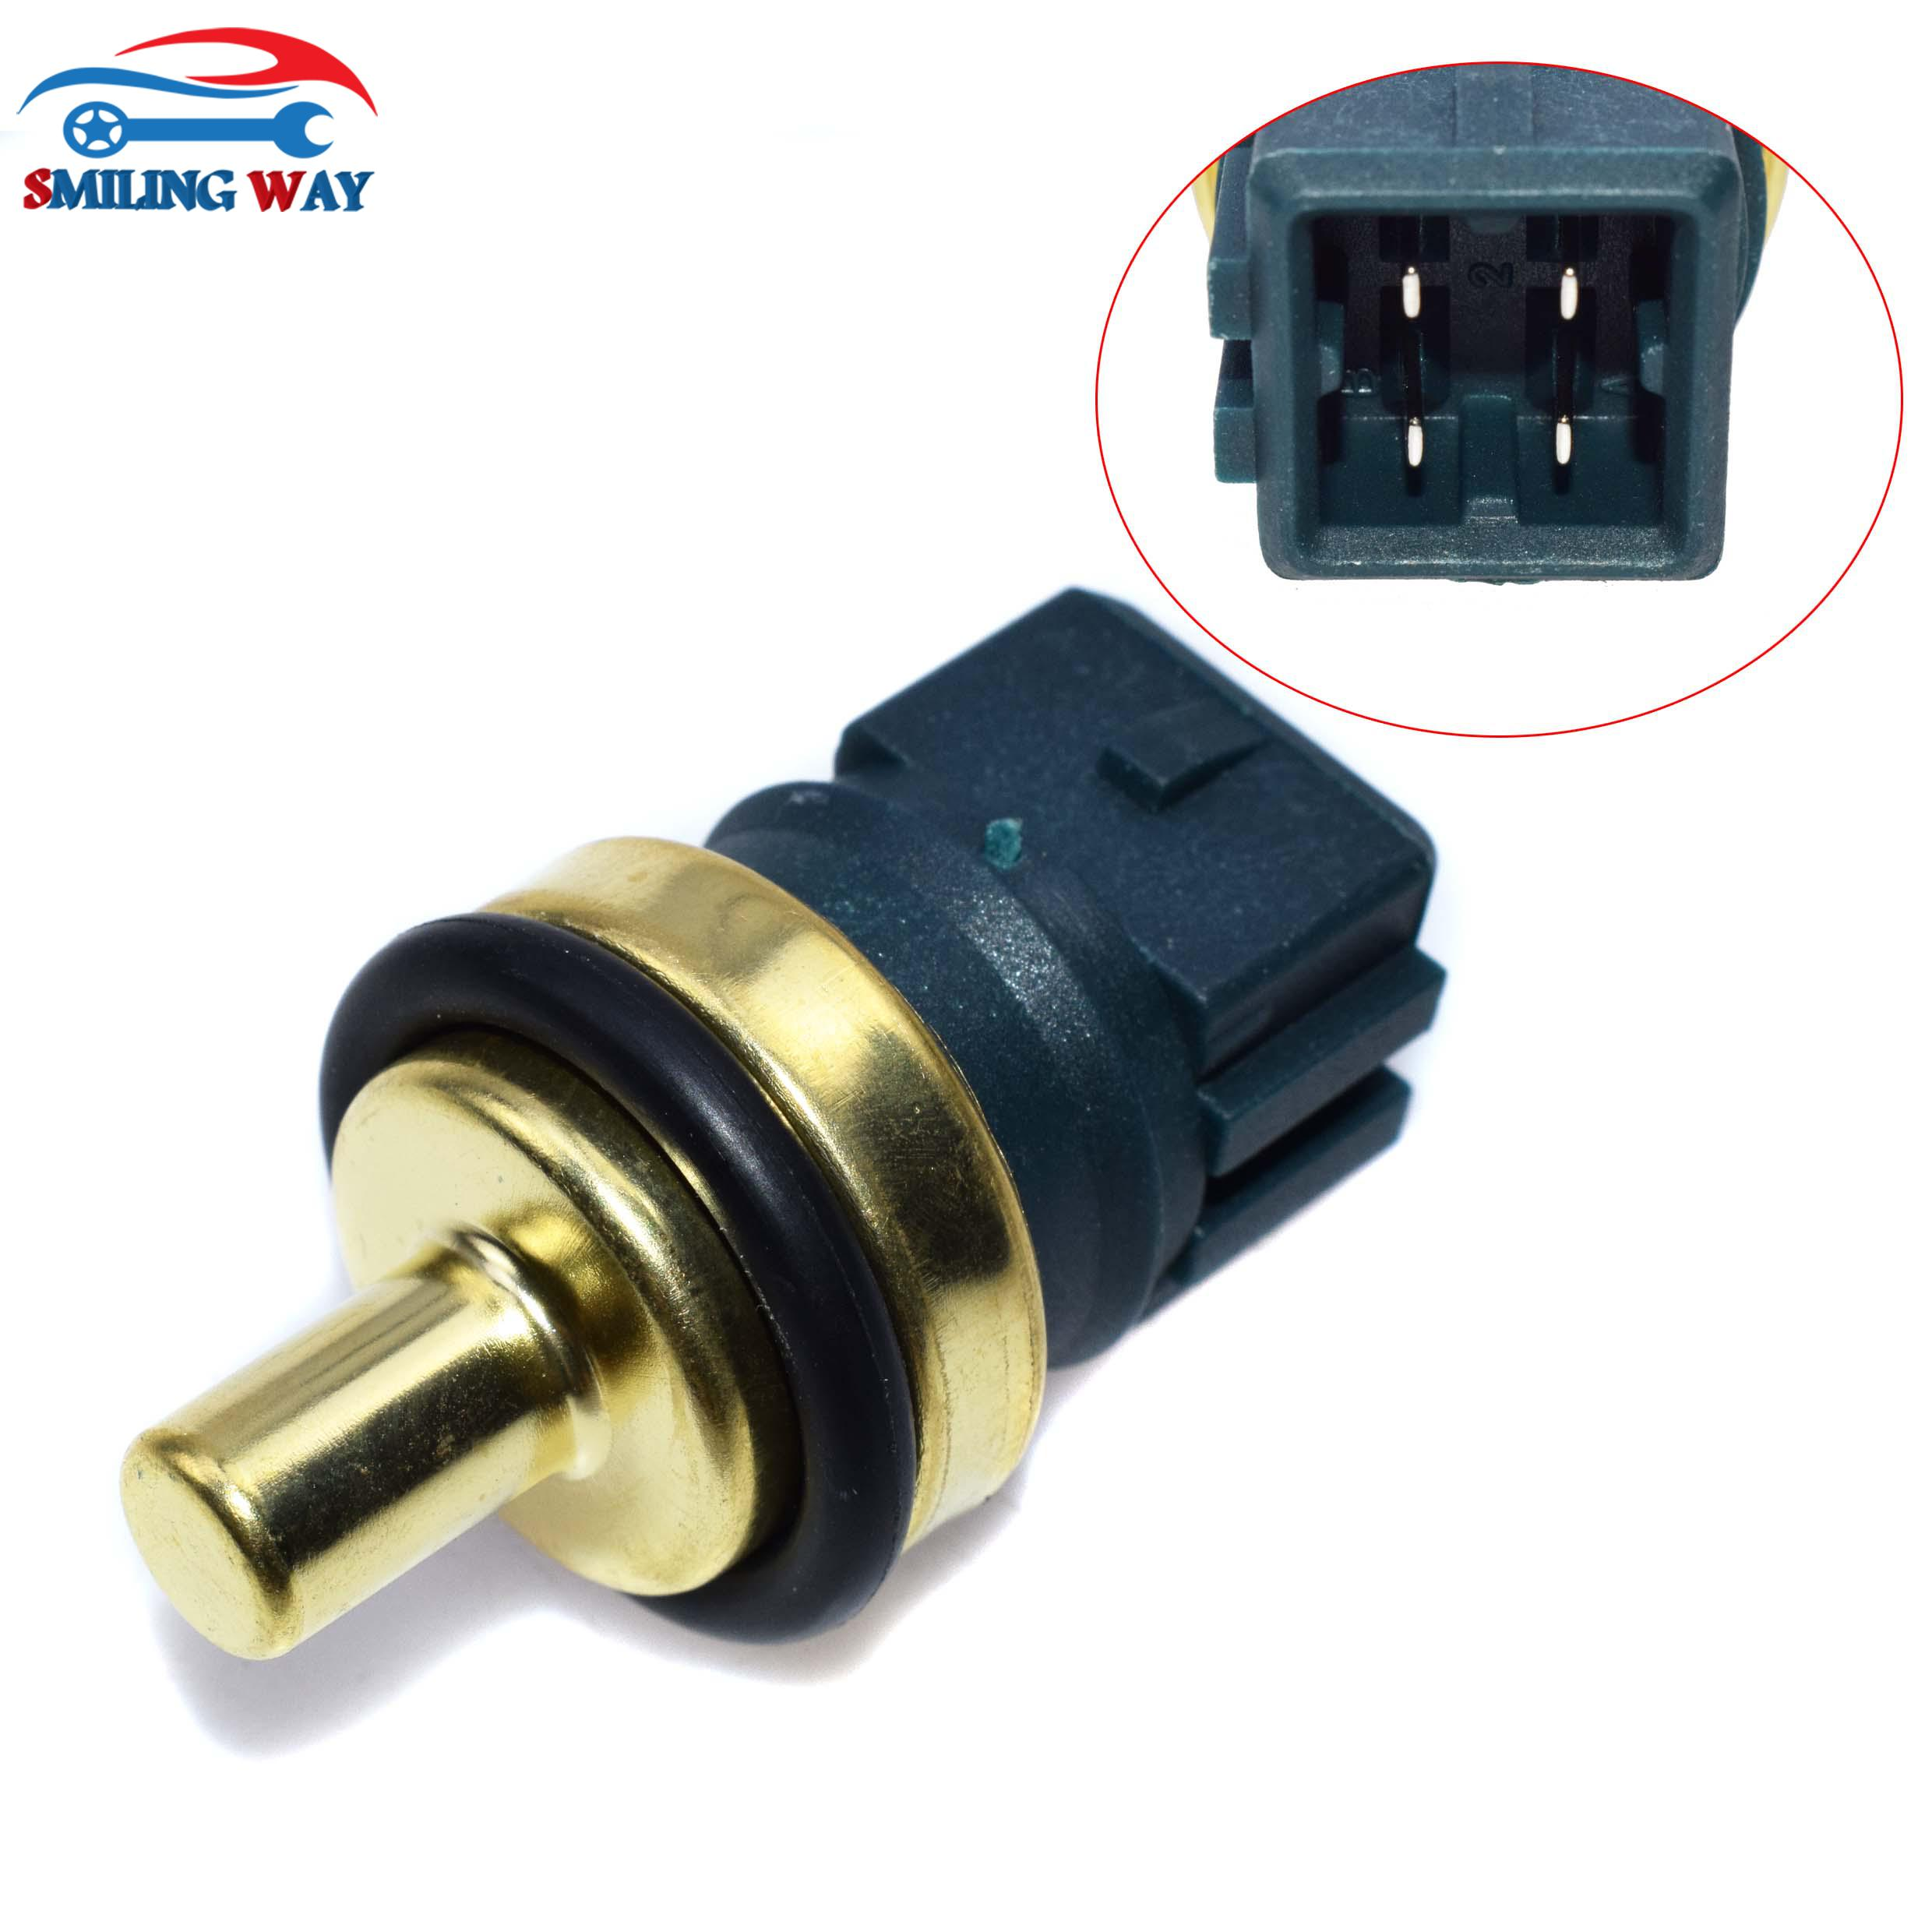 BRAND NEW COOLANT TEMPERATURE SENSOR VW AUDI 078919501B